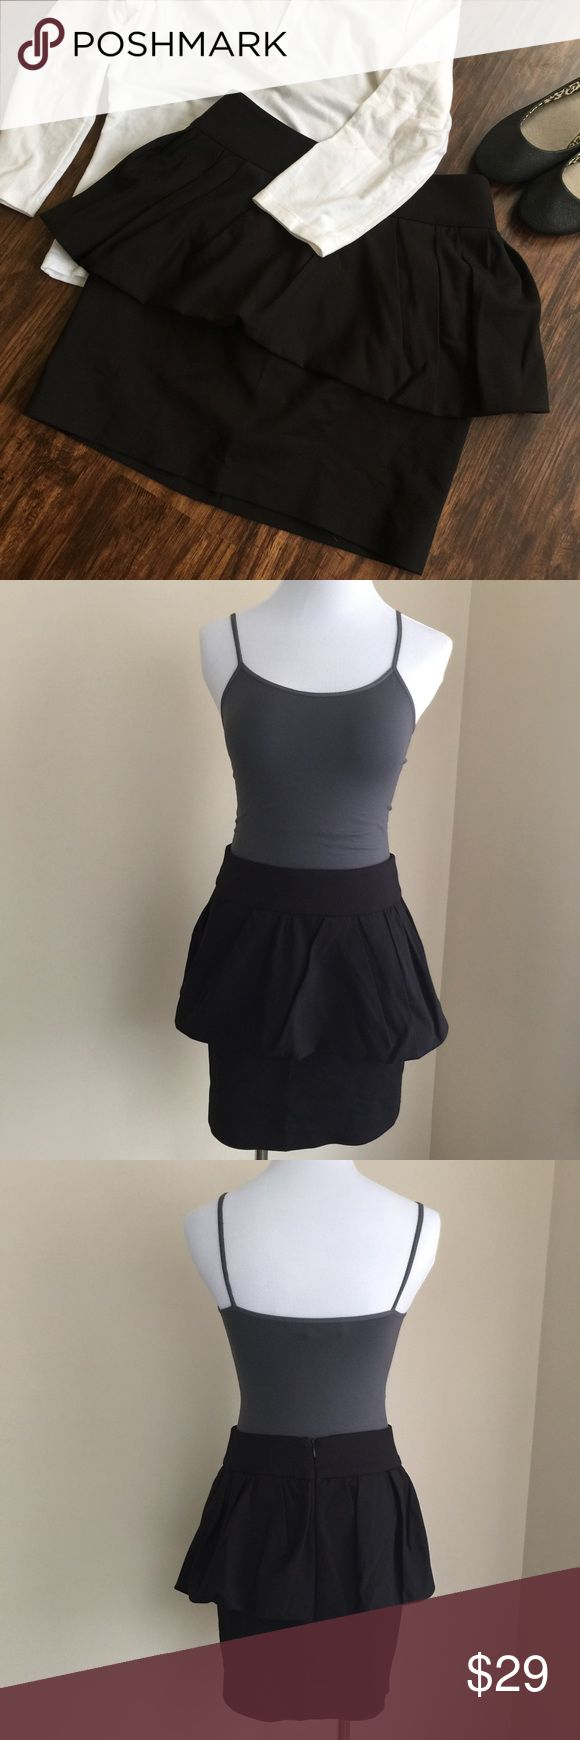 "🔵SALE Zara black peplum skirt sz S 🔵SALE was $25 now $15.  Zara Woman black peplum skirt, size S.  Mini length, hidden back zip, wide waistband.  Condition:  excellent pre-loved.  Material:  51% cotton/46% polyester/3% elastane.  Measurements (approximate, taken laying flat):  length 16"", flat waist 14"", flat hip 16.5"". Zara Skirts Mini"